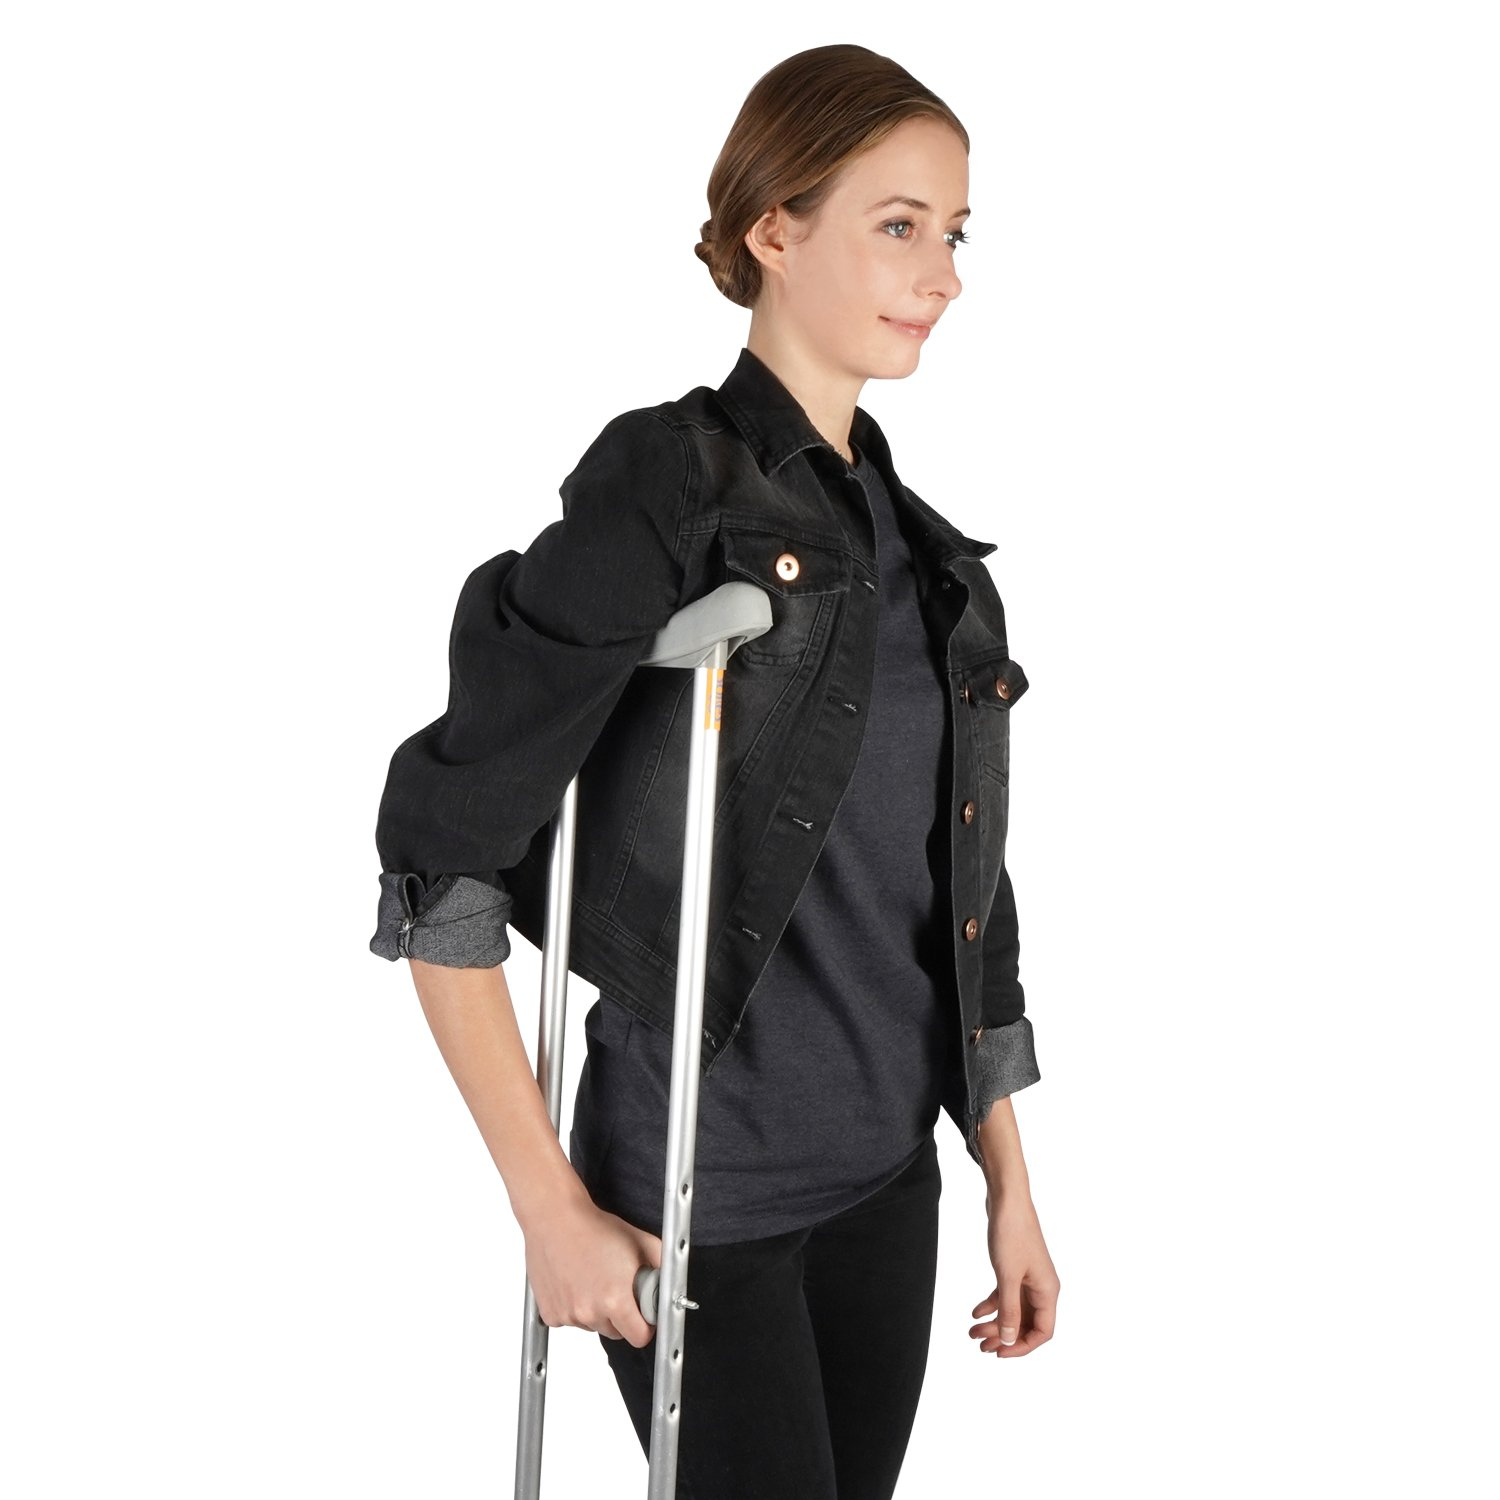 Soles Walking Crutches (Aluminum) - Adjustable Post Injury or Surgery Support for Men, Women and Teens - Lightweight, Durable with Ergonomic Grips and Armpit Foam (Medium)